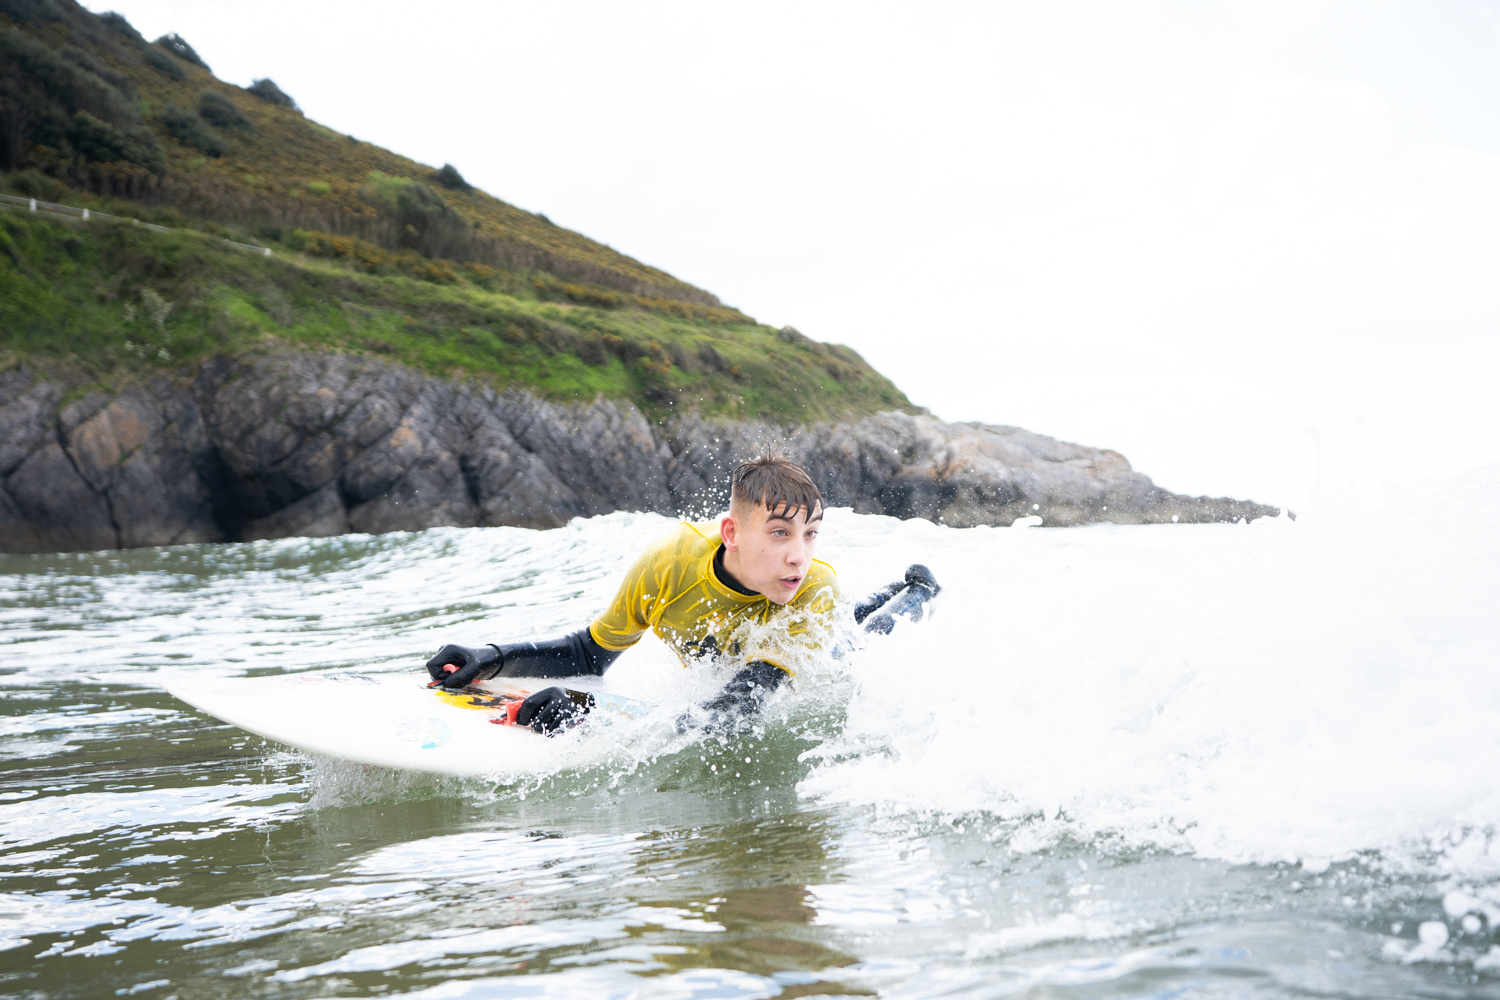 Jack Abbott - Surf Ability - Finisterre-08946.jpg